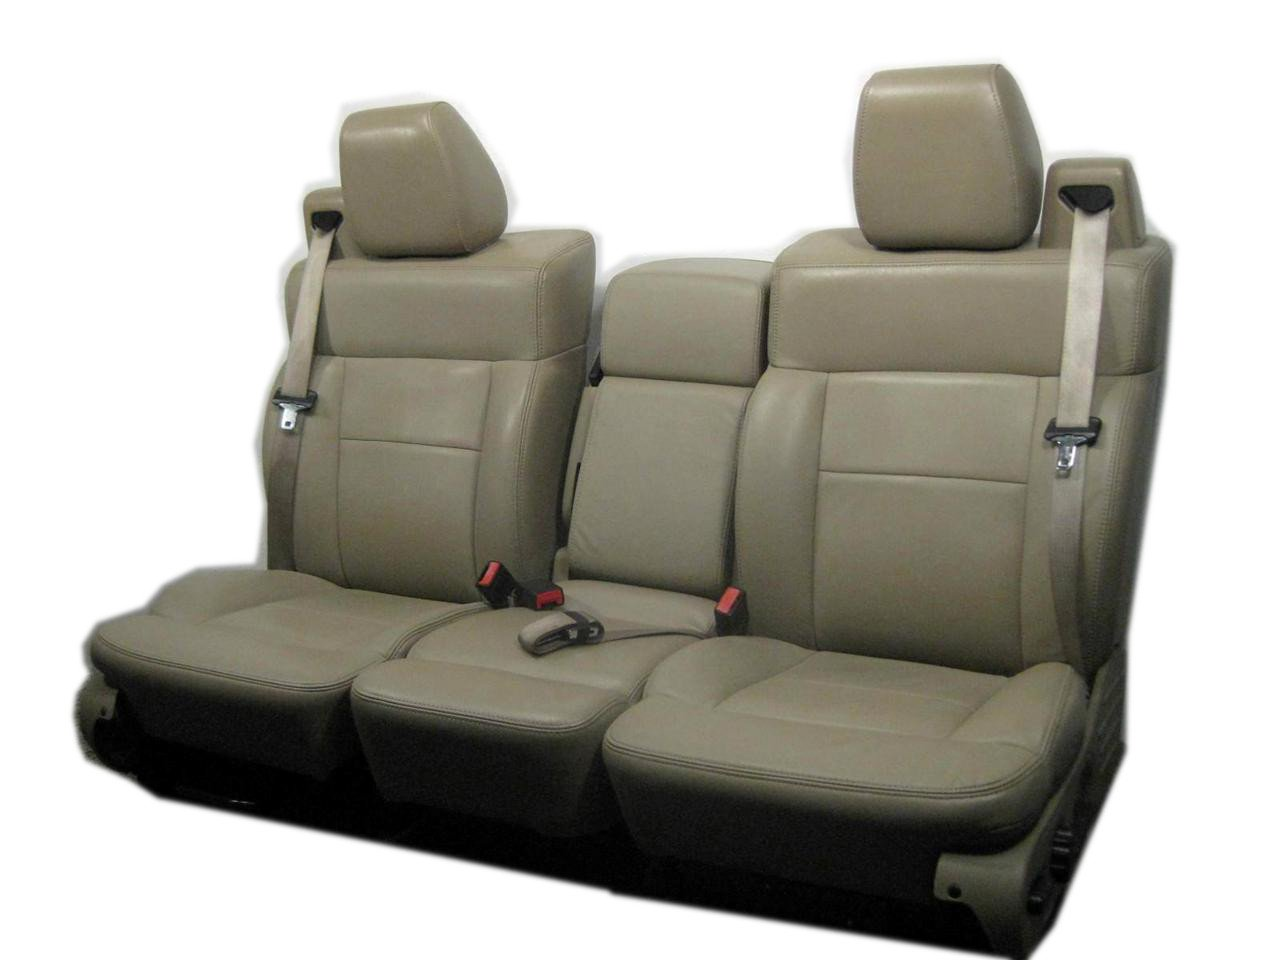 Remarkable Amazon Com Ford F 150 Oem Used Replacement Leather Seats Machost Co Dining Chair Design Ideas Machostcouk